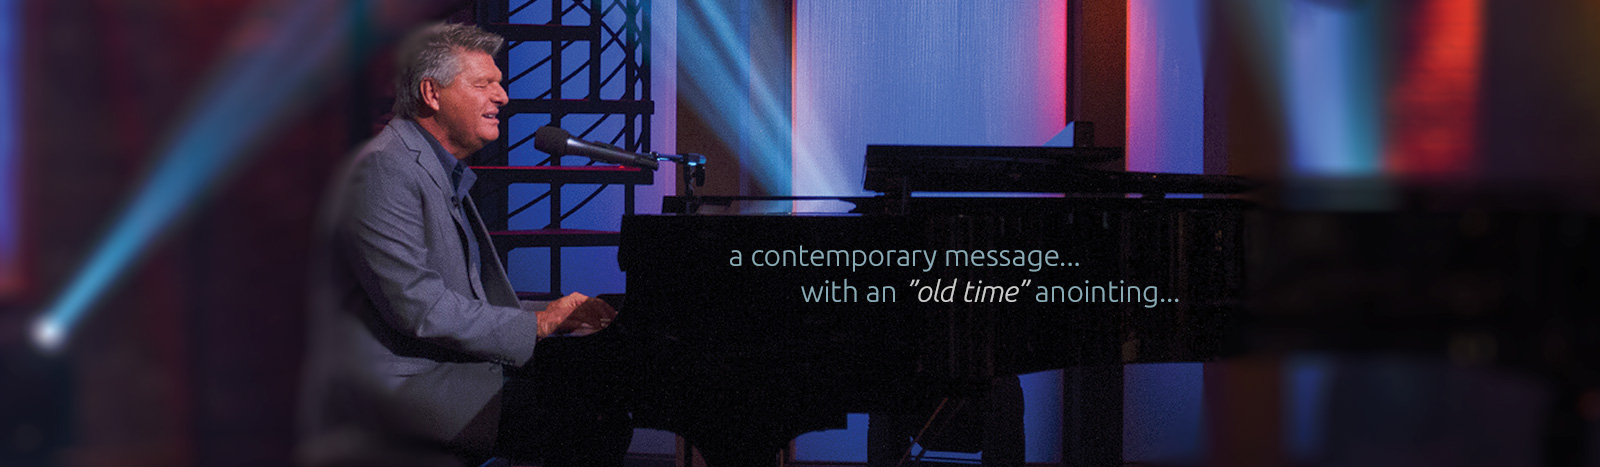 TBM - A Contemporary Message with an Old Time Anointing